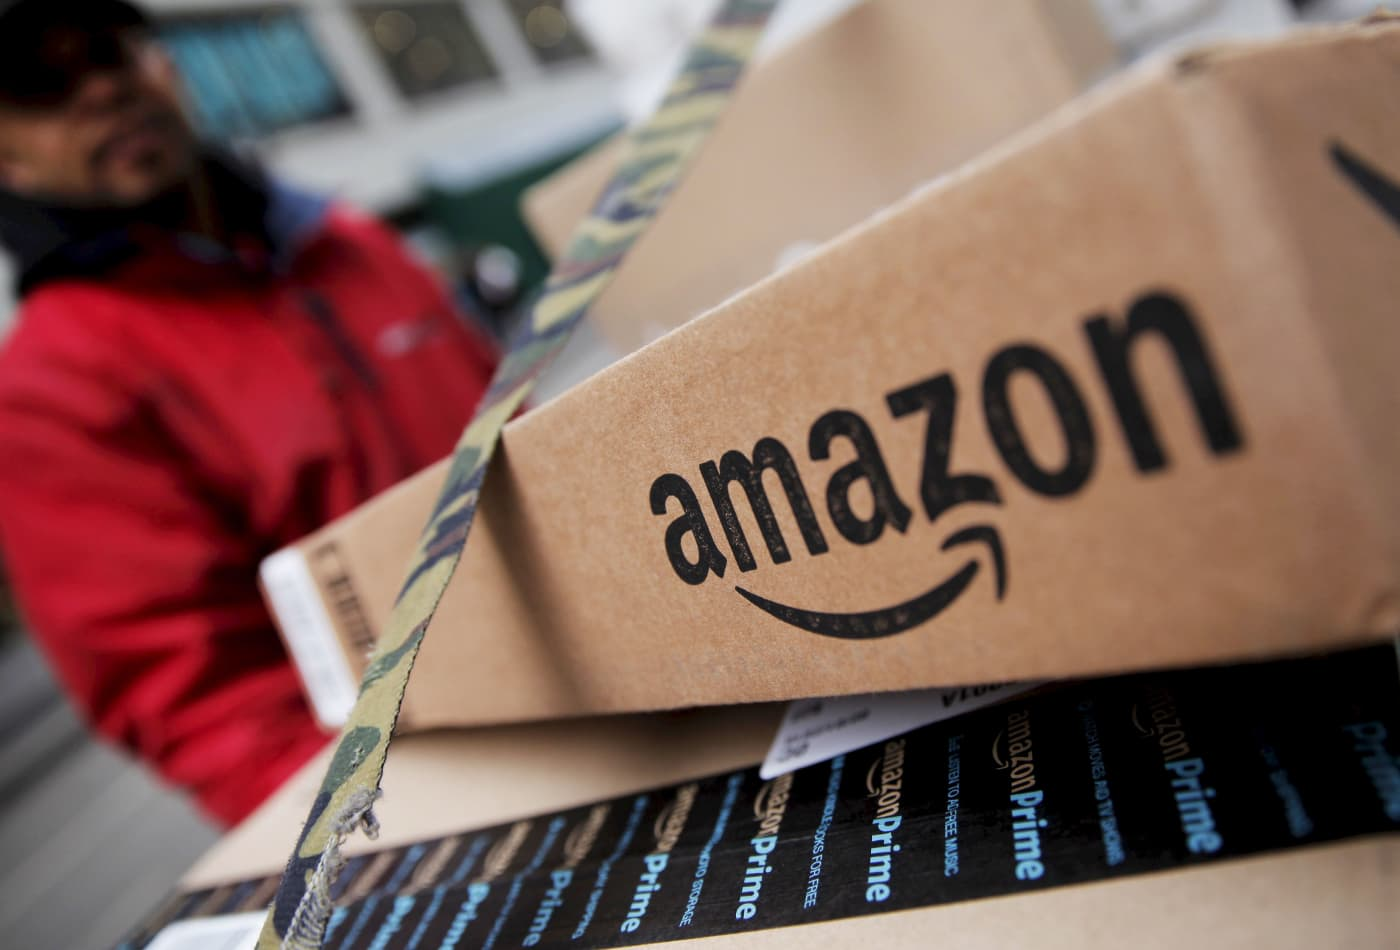 Here are Tuesday's biggest analyst calls of the day: Amazon, FedEx, Caterpillar, Boeing & more